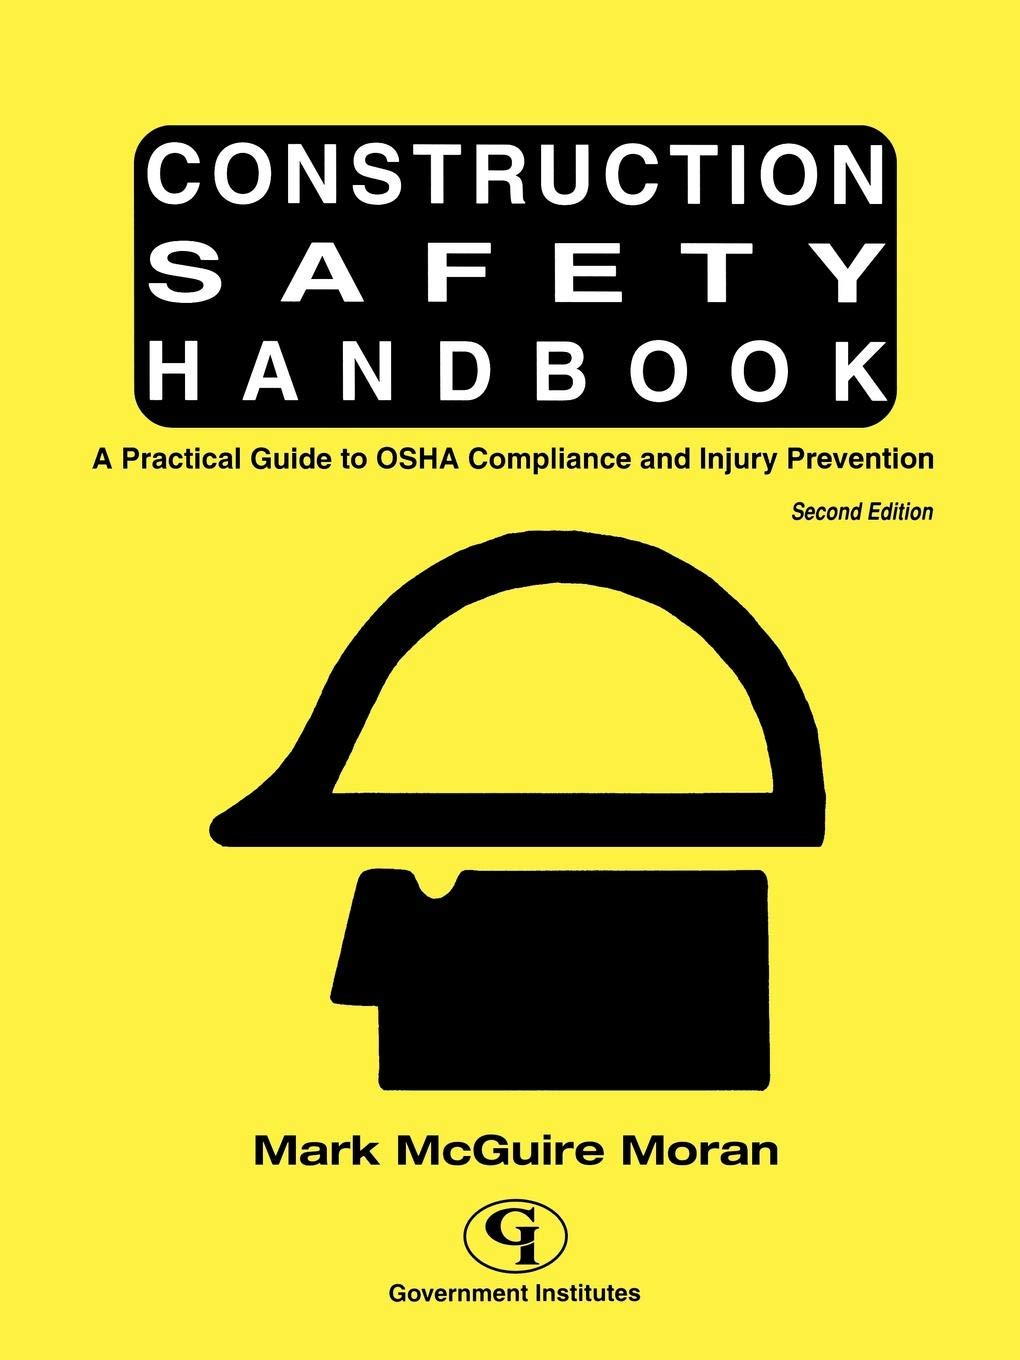 Construction Safety Handbook: A Practical Guide to OSHA Compliance and  Injury Prevention: Mark McGuire Moran: 9780865878136: Amazon.com: Books